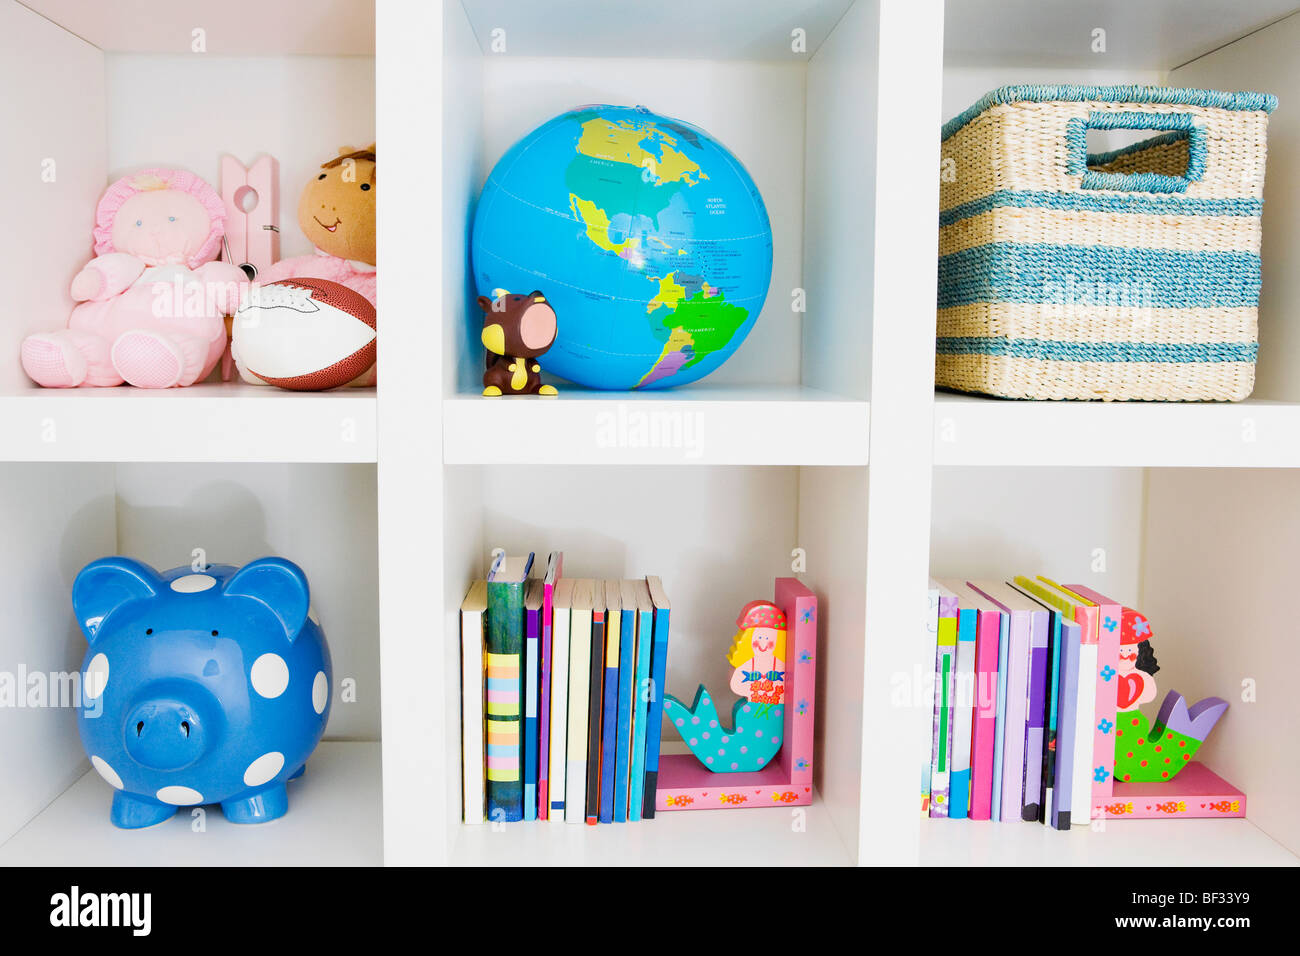 Toys and books on a shelf - Stock Image